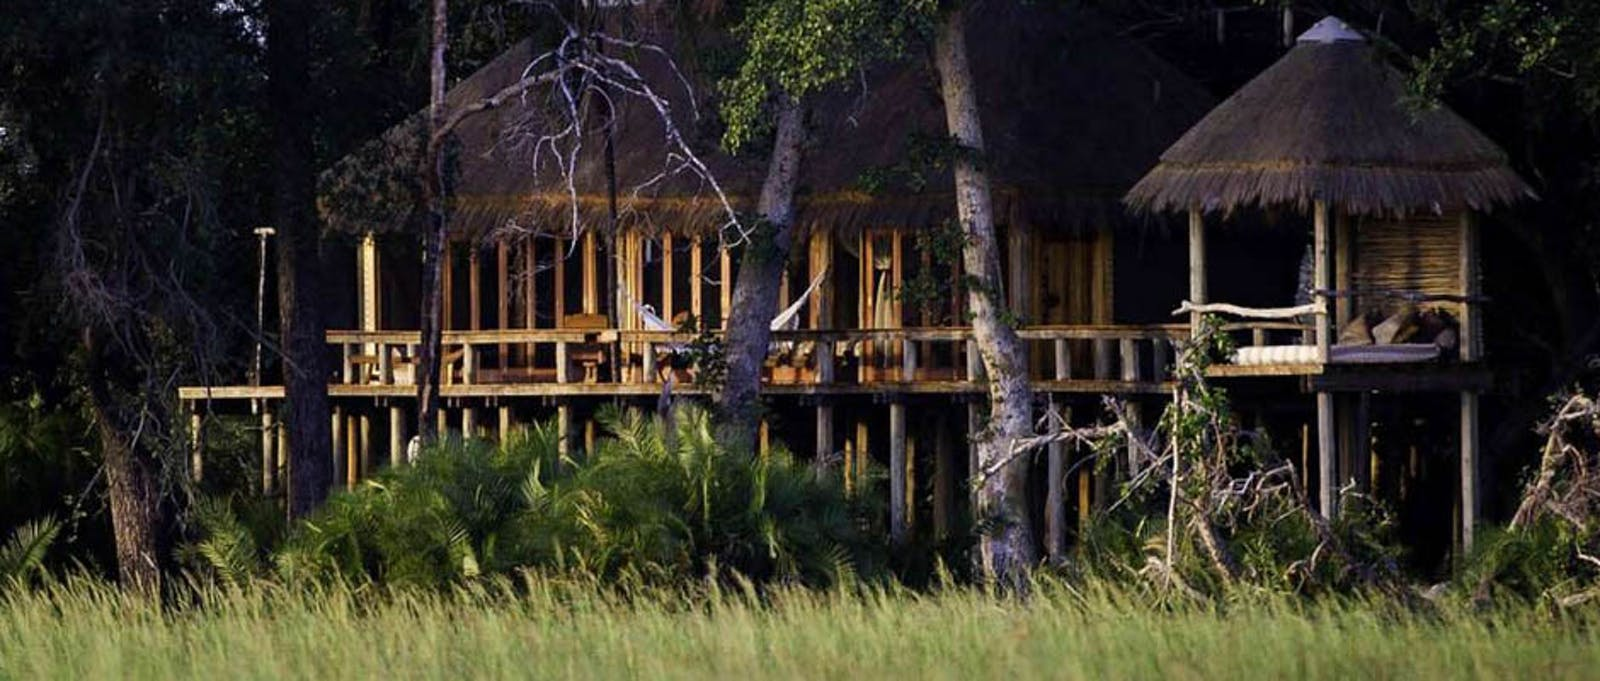 Luxury lodge at Jao Camp, Botswana